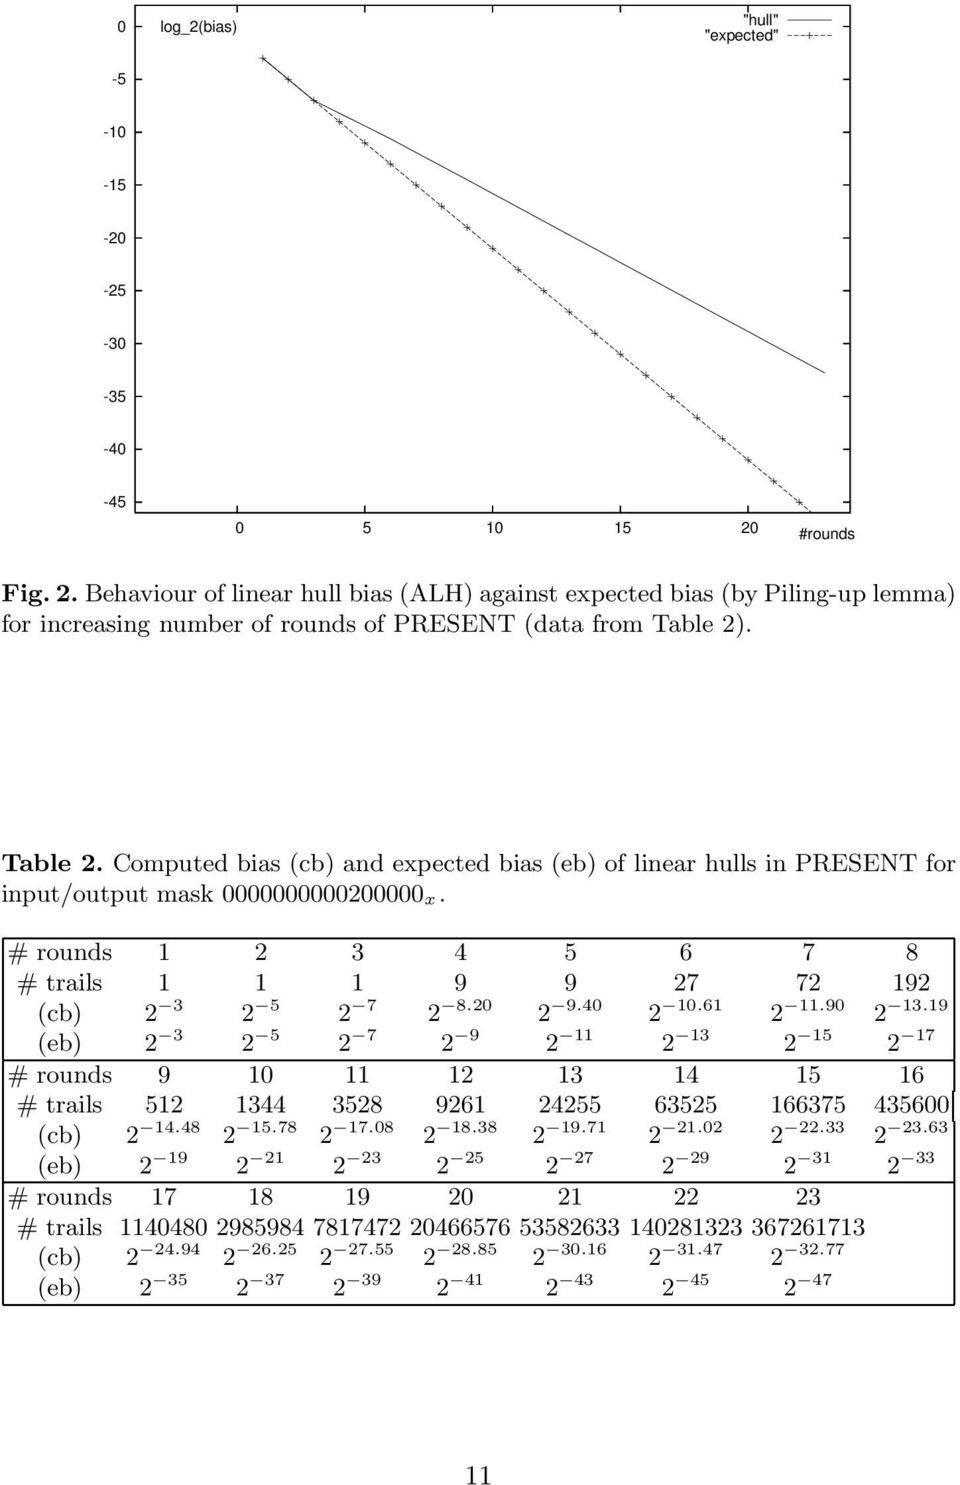 . Table 2. Computed bias (cb) and expected bias (eb) of linear hulls in PRESENT for input/output mask 0000000000200000 x. # rounds 1 2 3 4 5 6 7 8 # trails 1 1 1 9 9 27 72 192 (cb) 2 3 2 5 2 7 2 8.